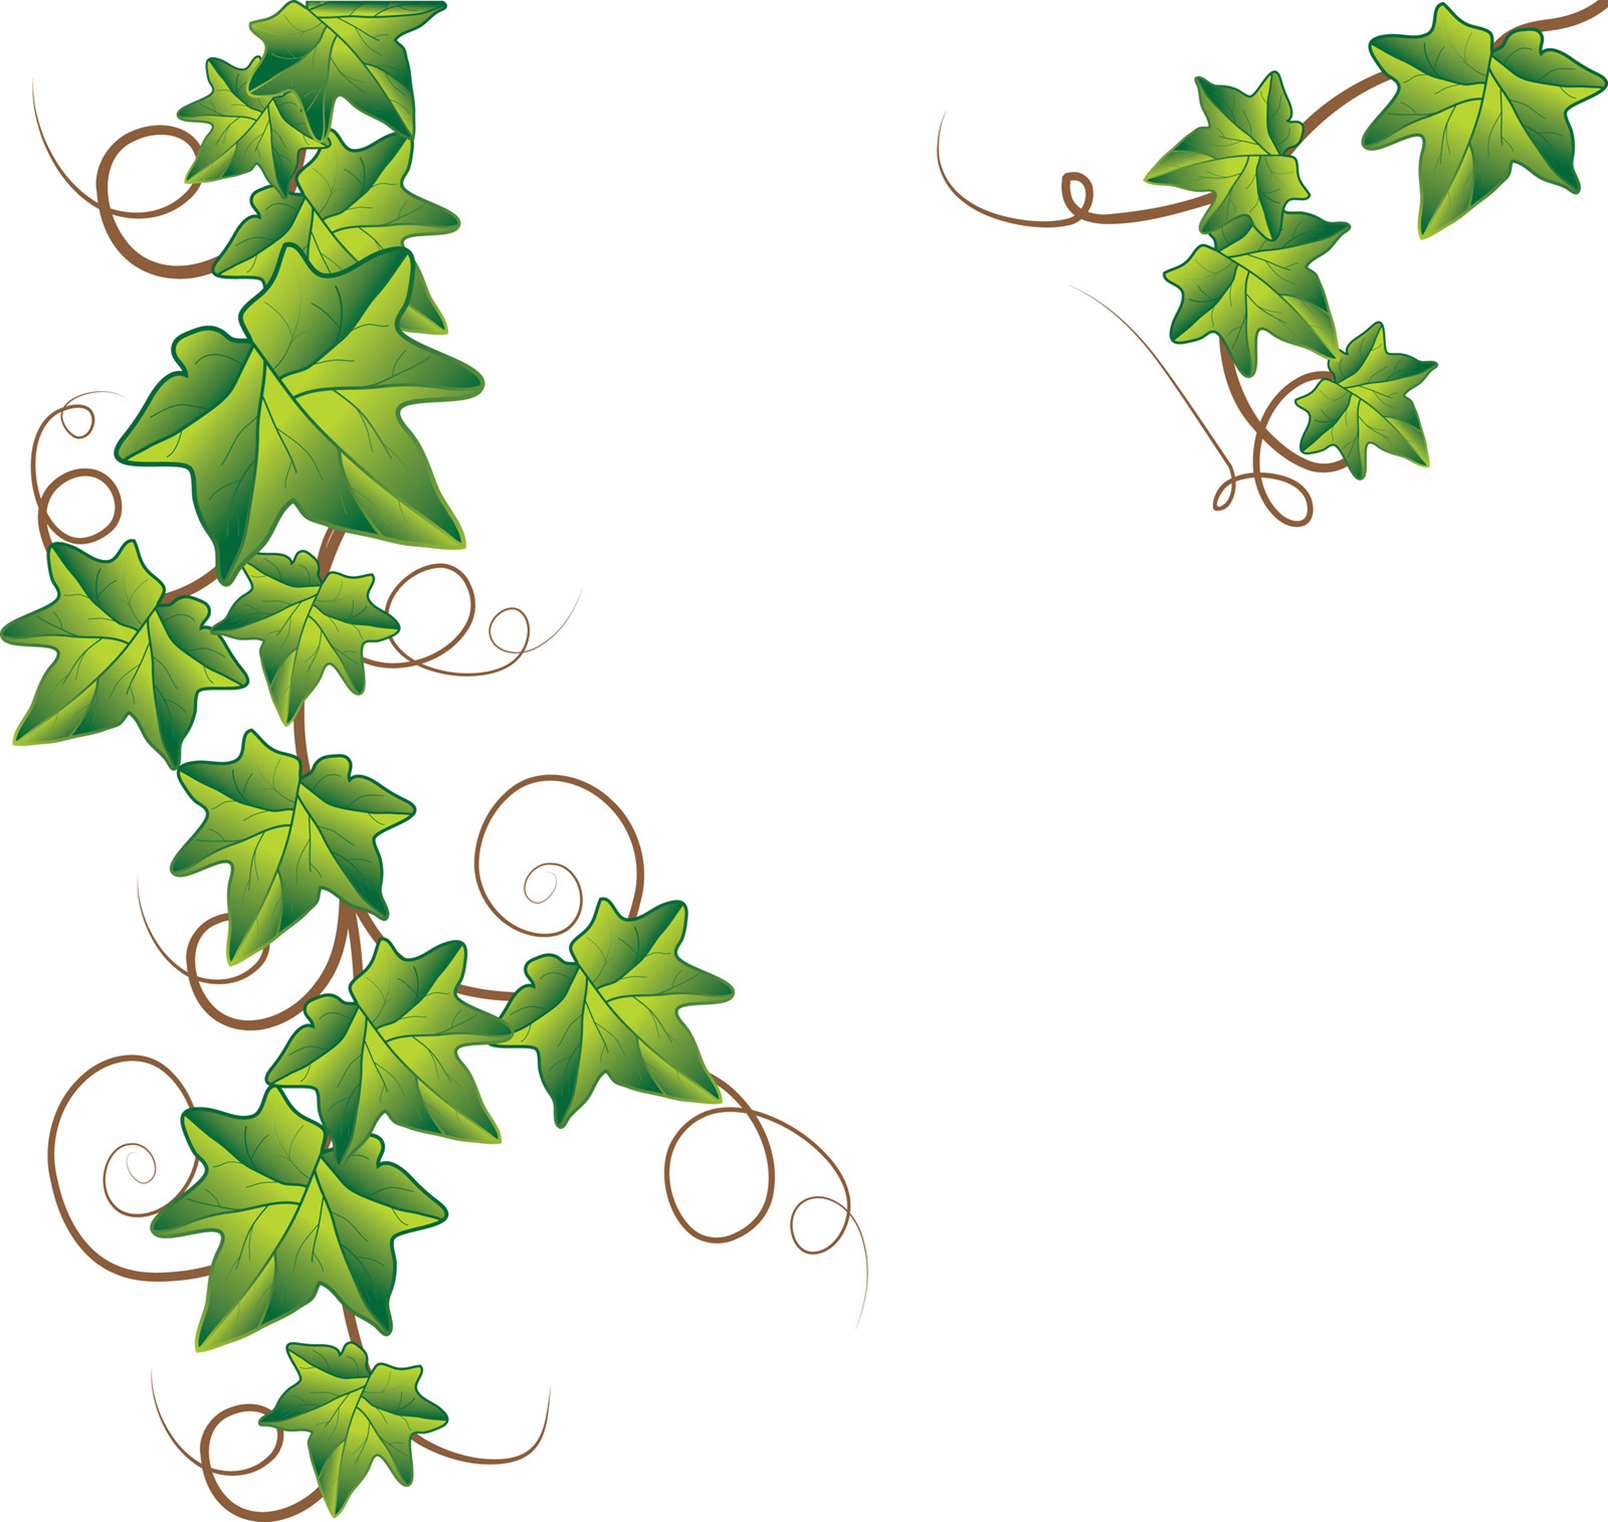 Pumpkin Vine Drawing Pumpkin Vine Clipart 13394451171289524118ivy Png